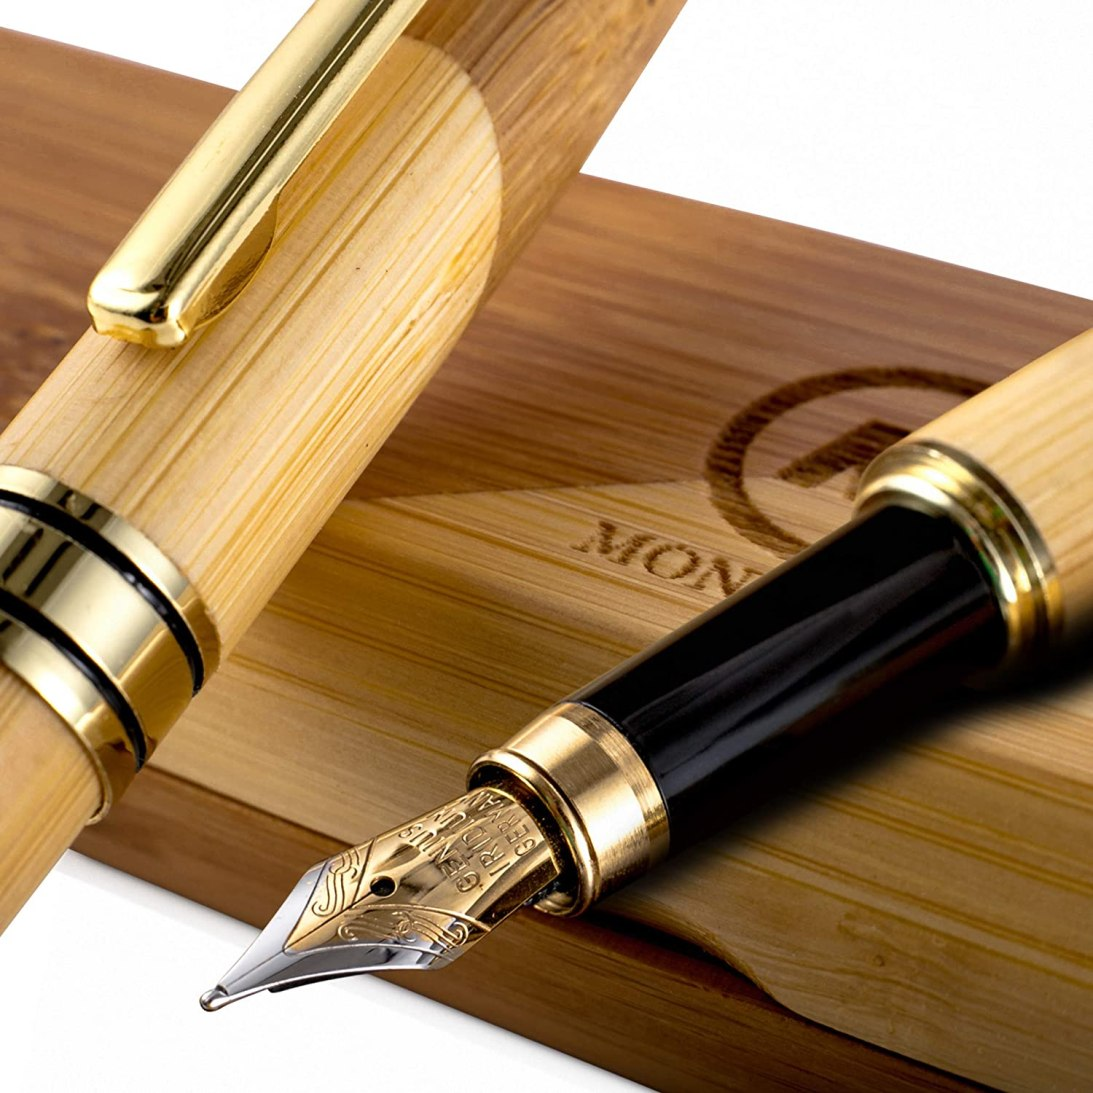 Best Pens For Gift | 15+ Beautiful Pens for gifts [2020] 37